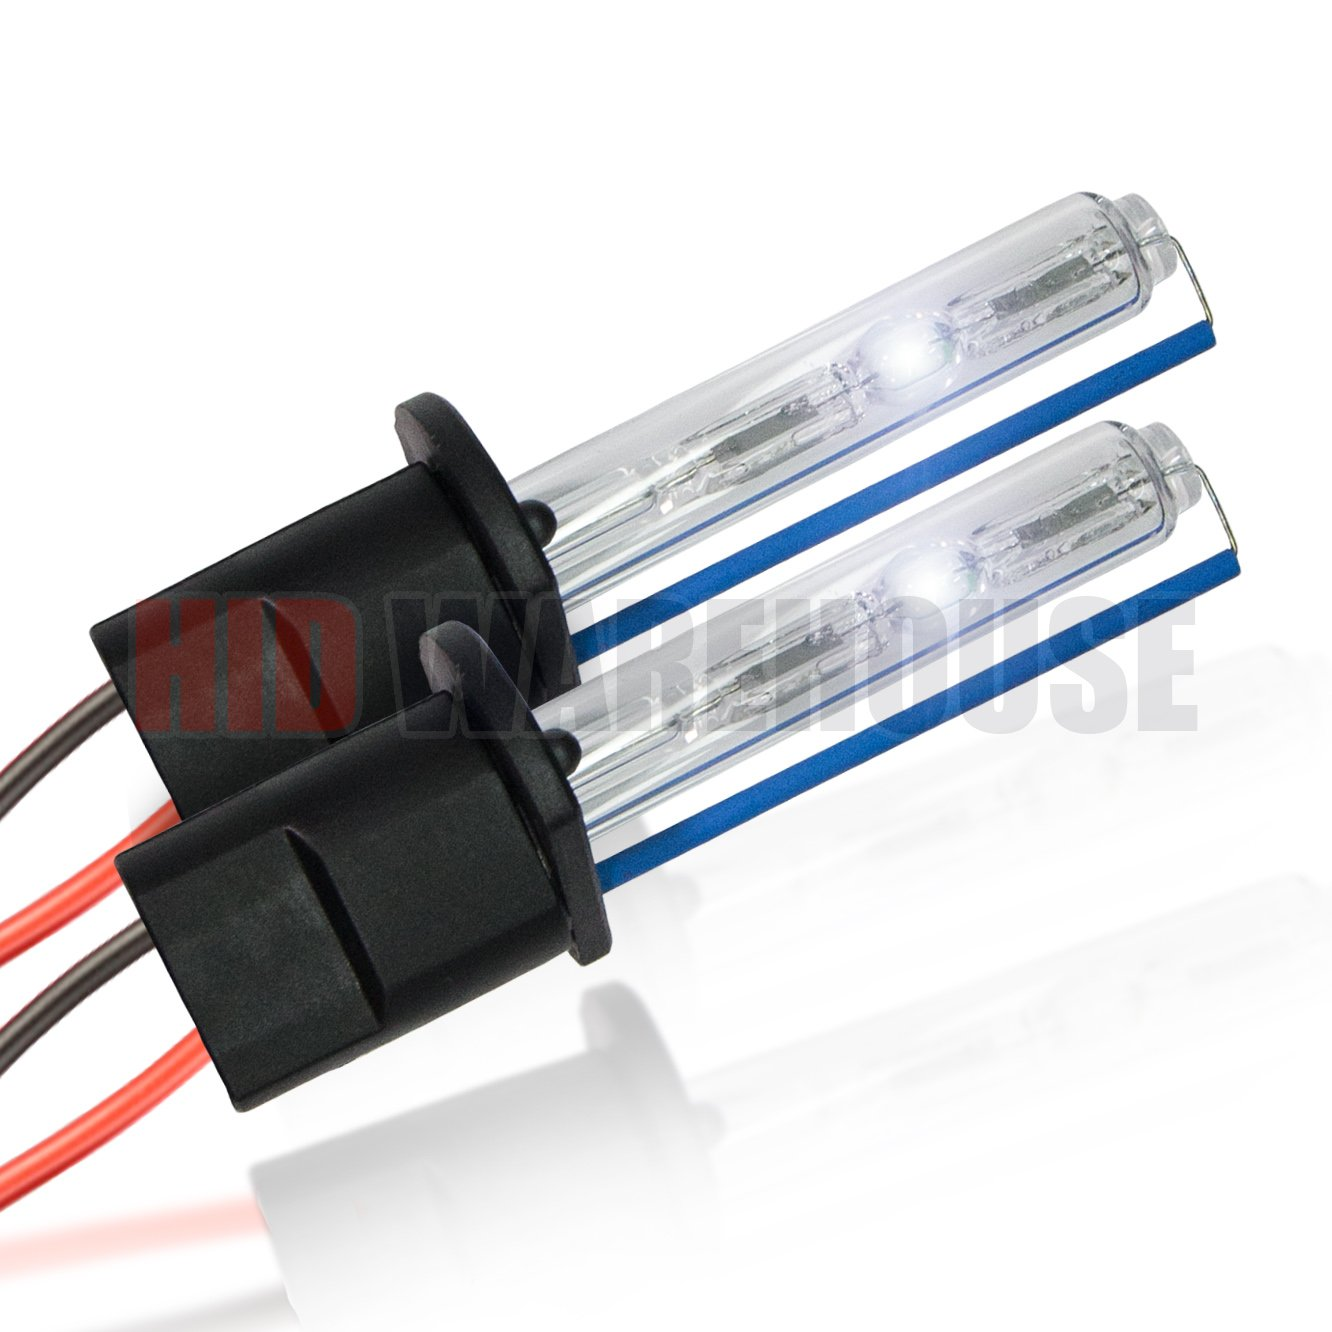 1 Pair HID-Warehouse HID Xenon Replacement Bulbs H7 5000K Bright White - 2 Year Warranty